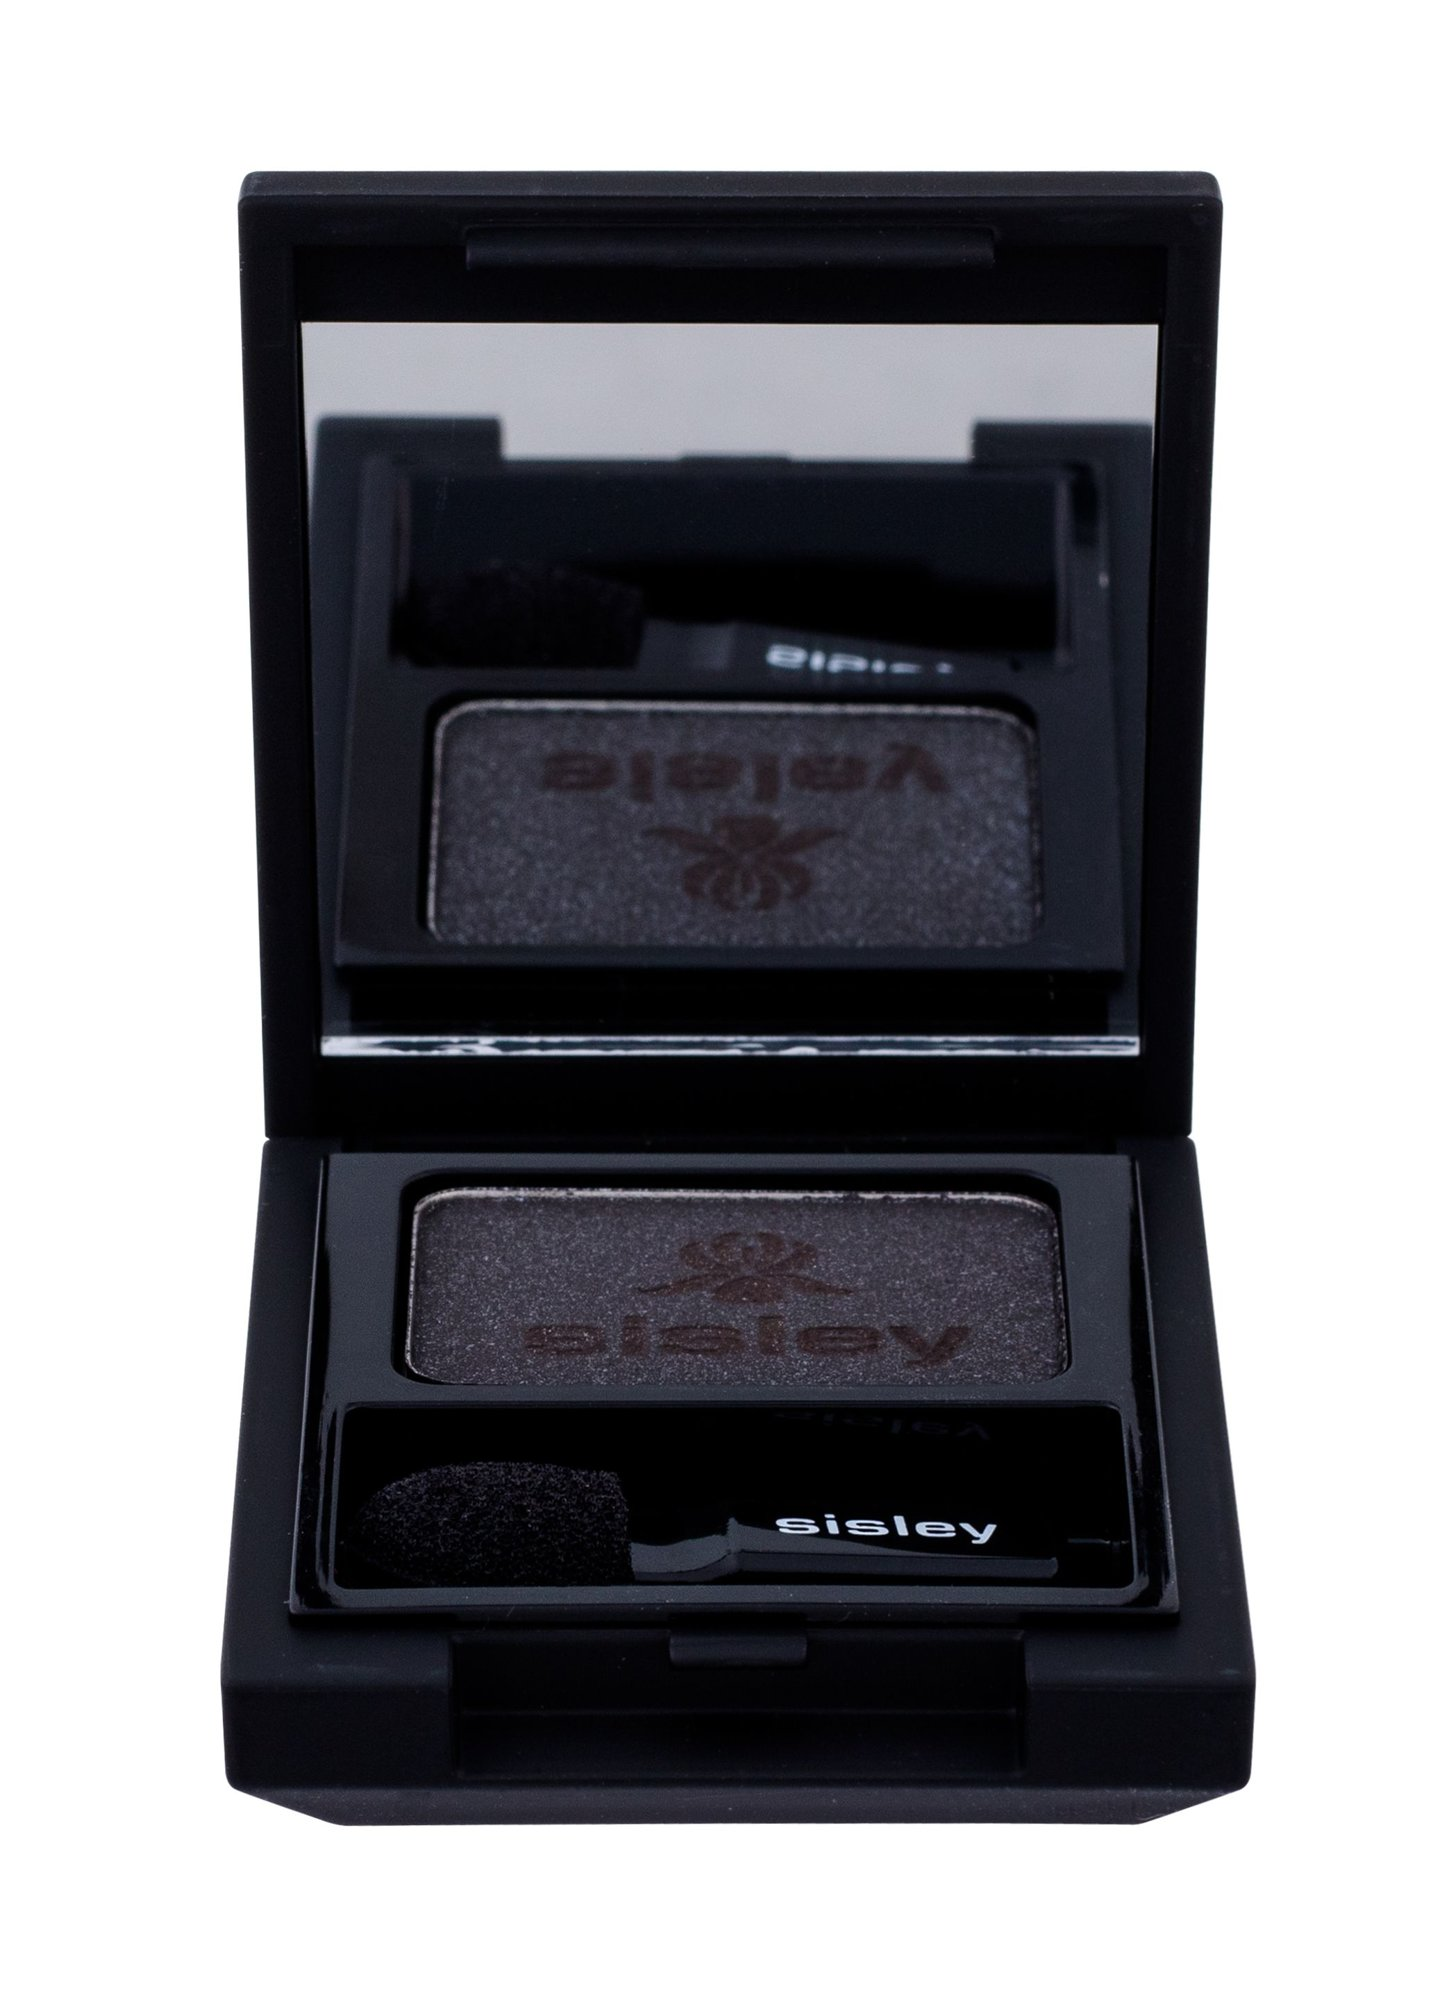 Sisley Phyto-Ombre Eclat Eyeshadow Cosmetic 1,5g 21 Black Diamond